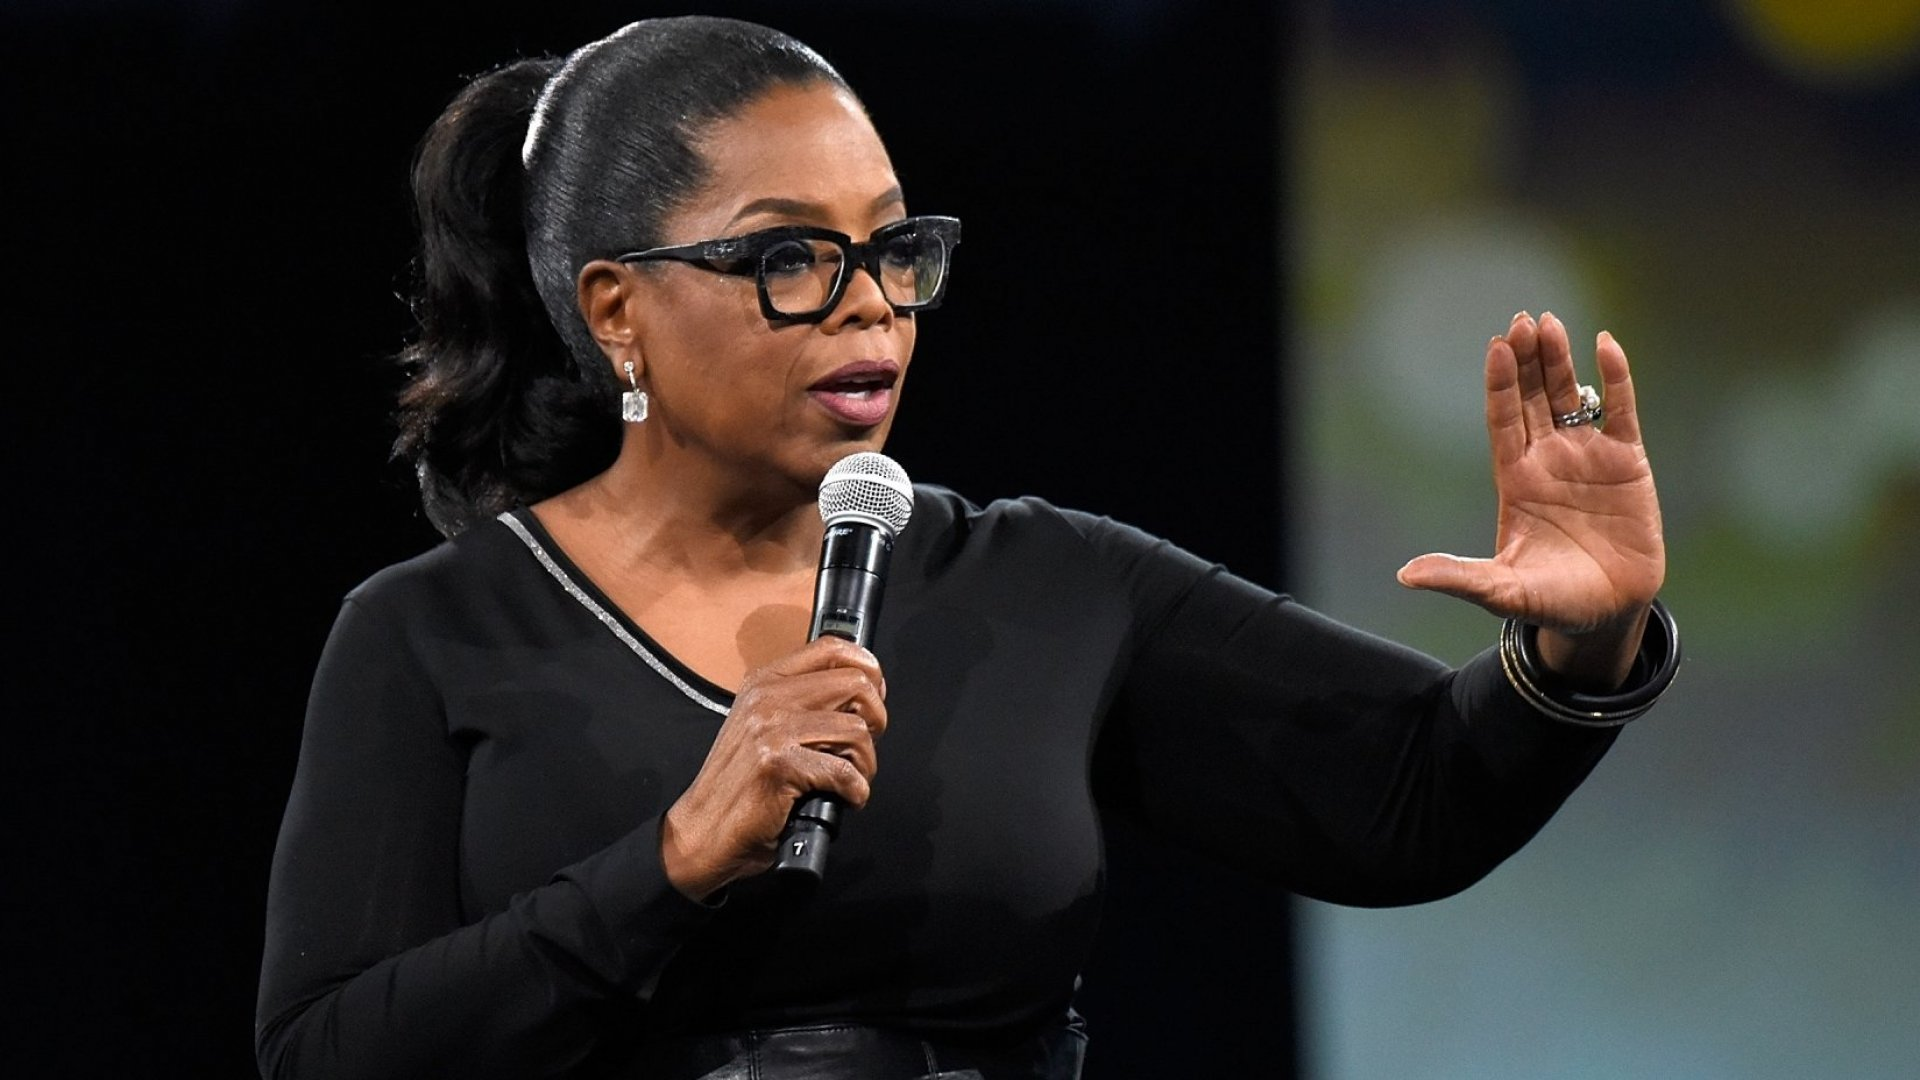 Oprah Winfrey Reveals the Reason Millennials Really Frustrate Her (You Might Be Surprised)